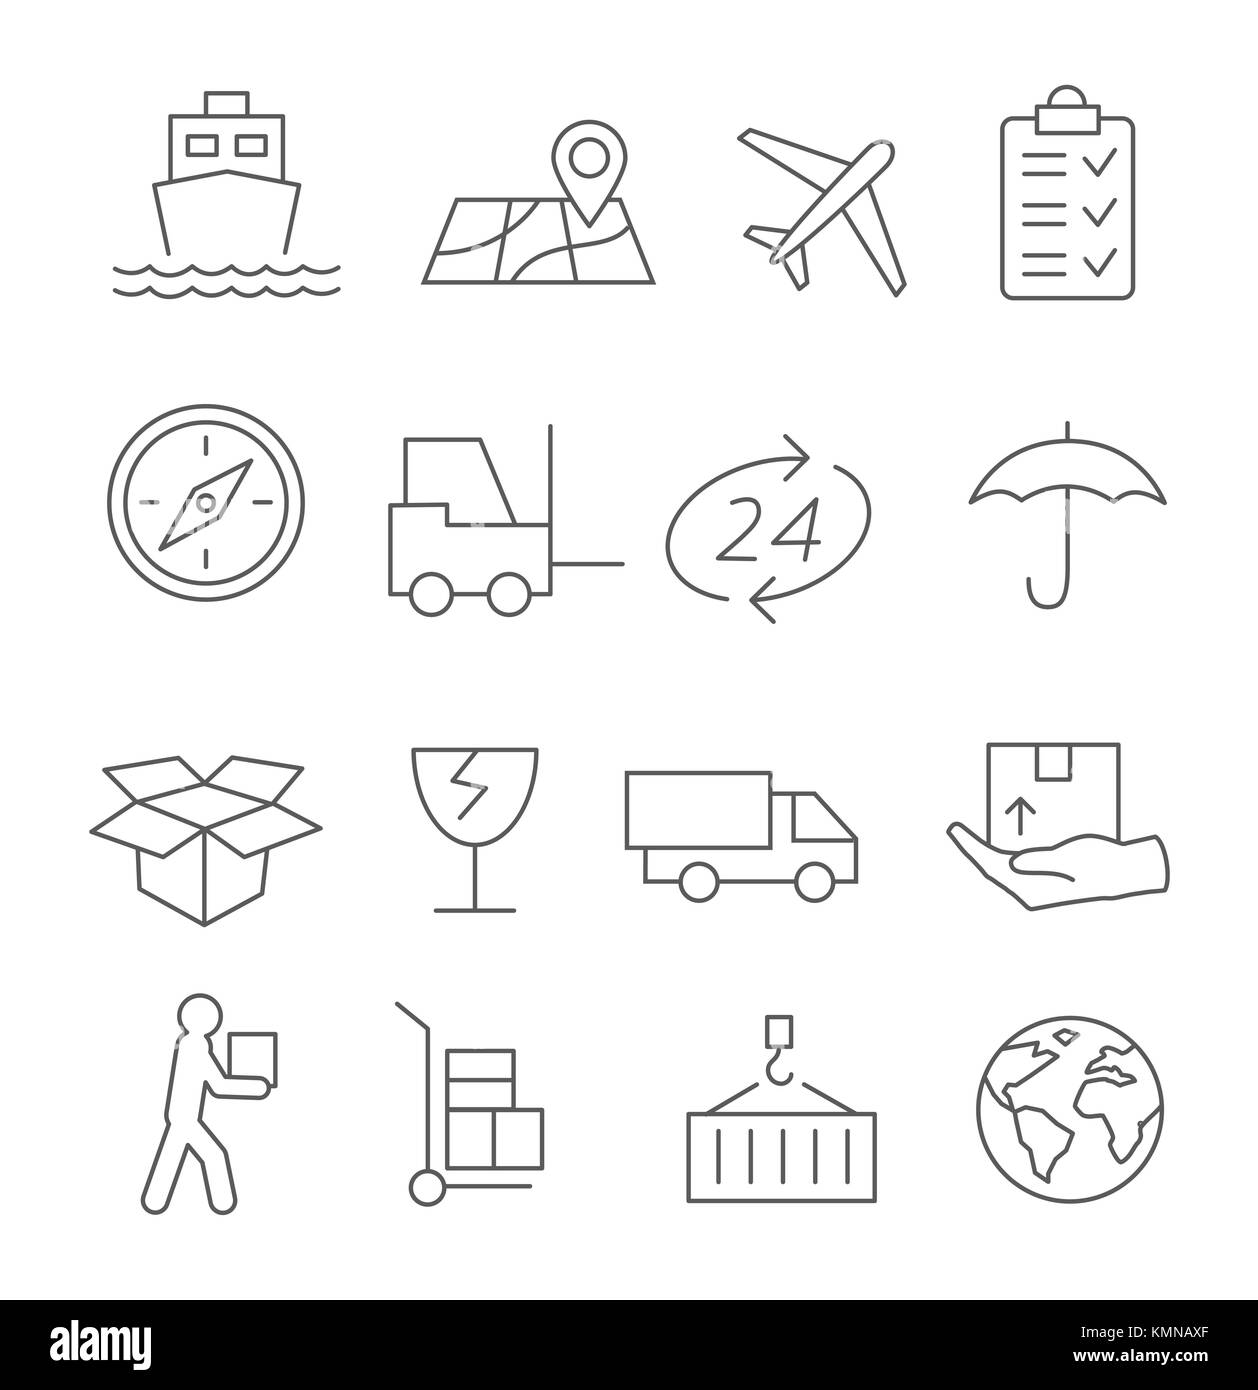 Logistic and Delivery Line Icons - Stock Image